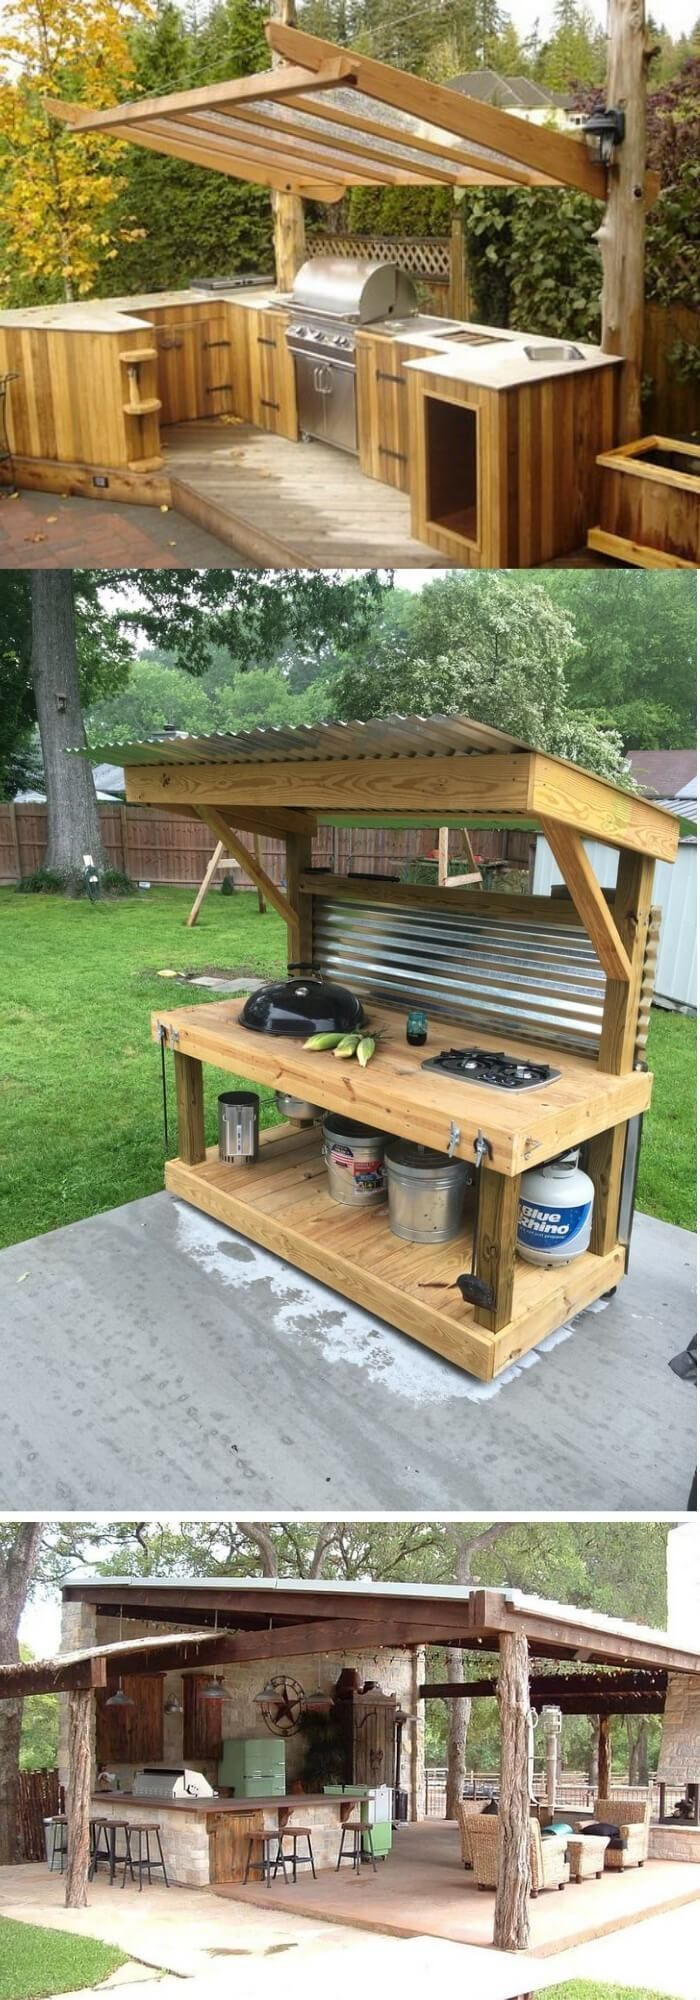 45 Awesome Outdoor Kitchen Ideas And Design Pandriva Diy Outdoor Kitchen Pallet Outdoor Pallet Furniture Outdoor